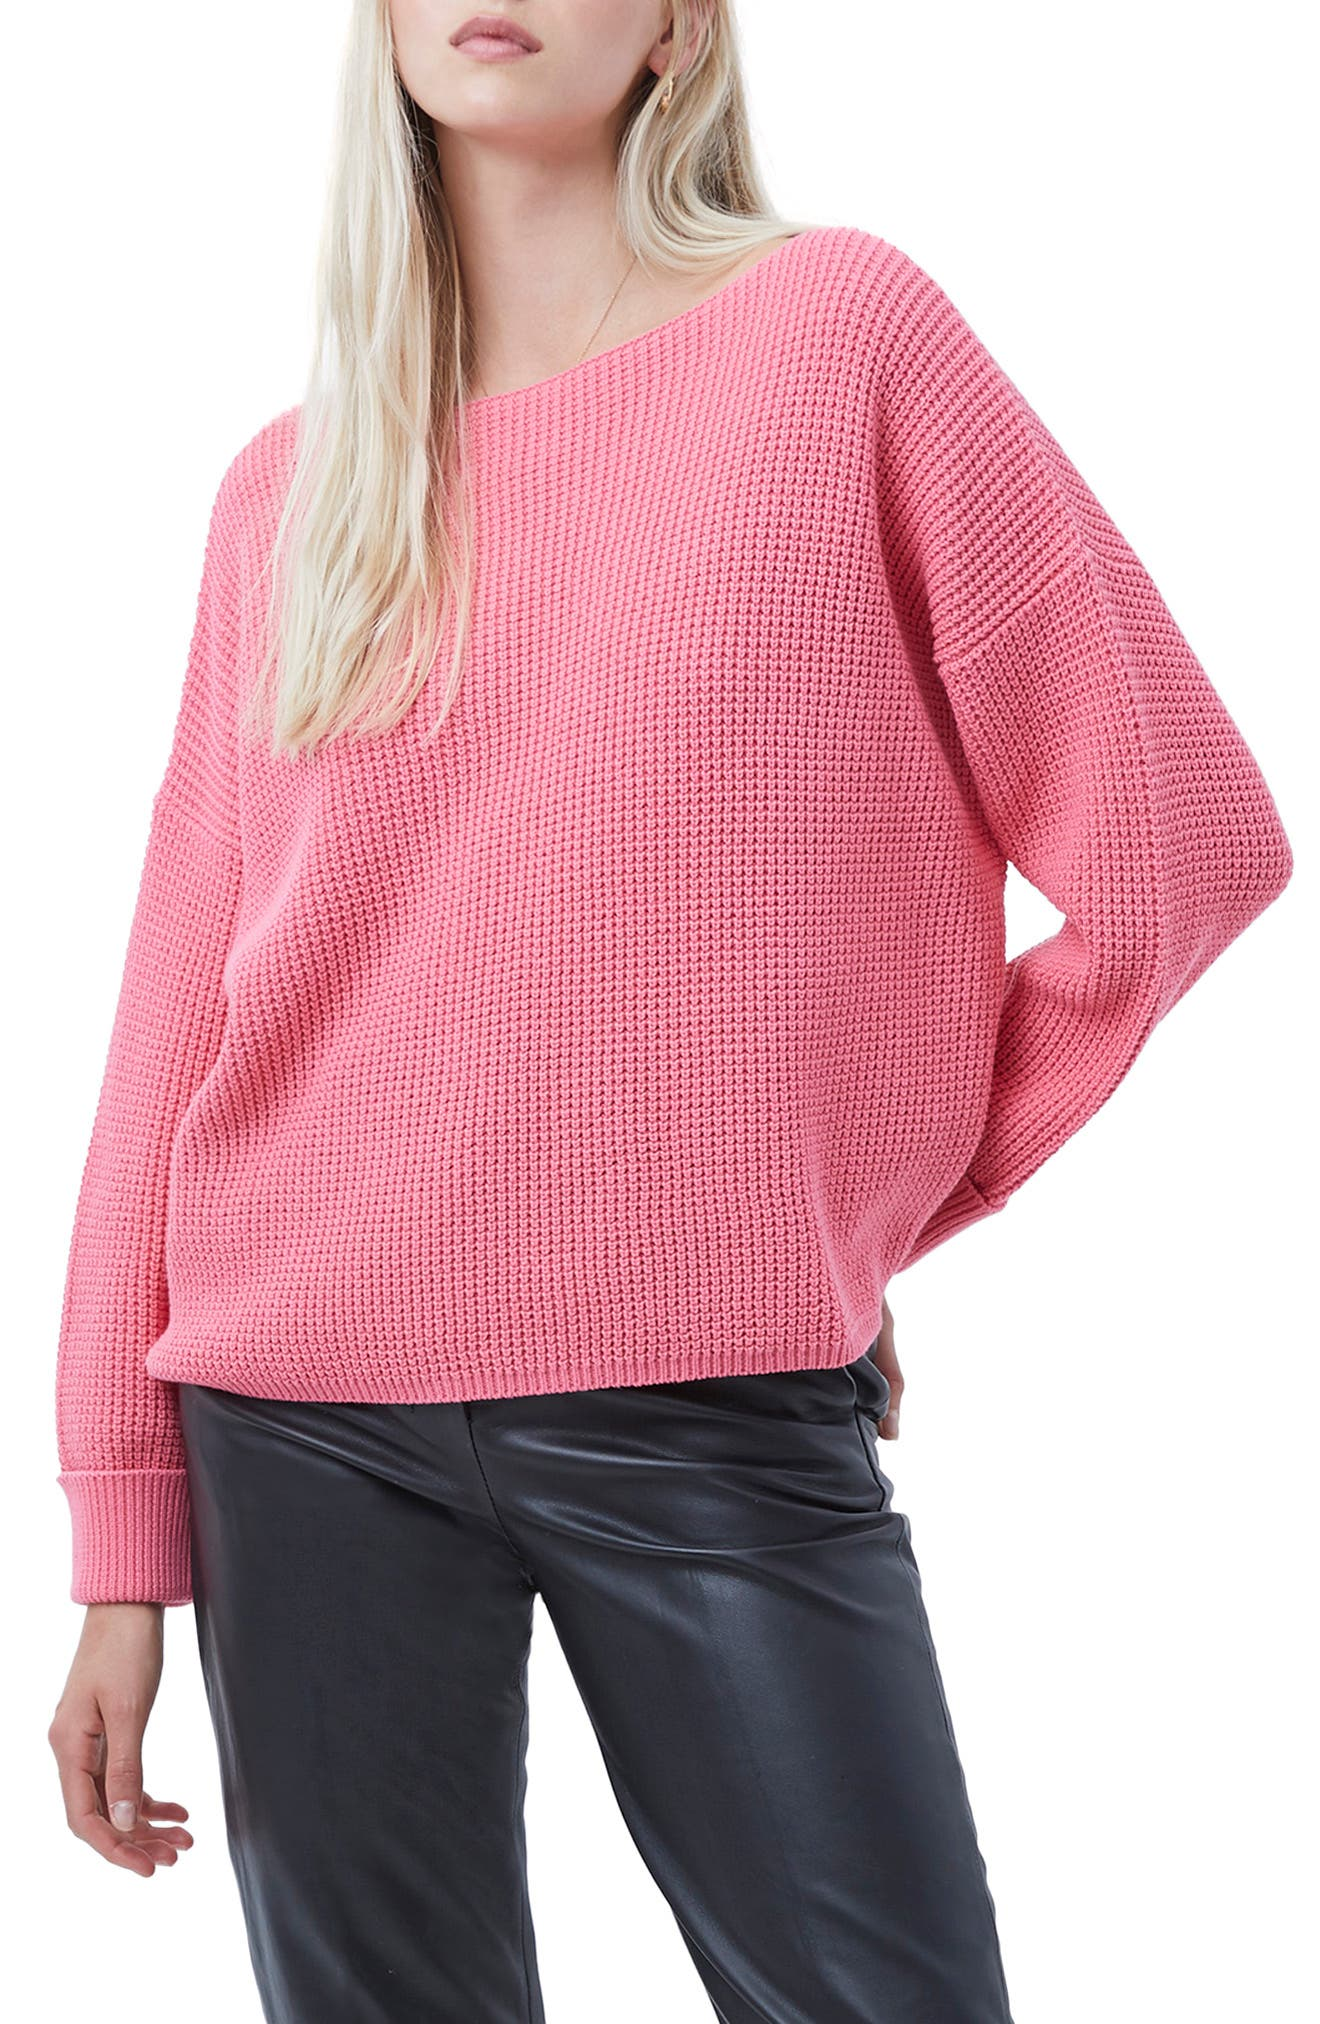 This textured, waffle-knit pullover is topped with an elongated neckline and framed by slouchy drop-shoulder sleeves. Style Name: French Connection Millie Mozart Waffle Knit Sweater. Style Number: 6102378. Available in stores.